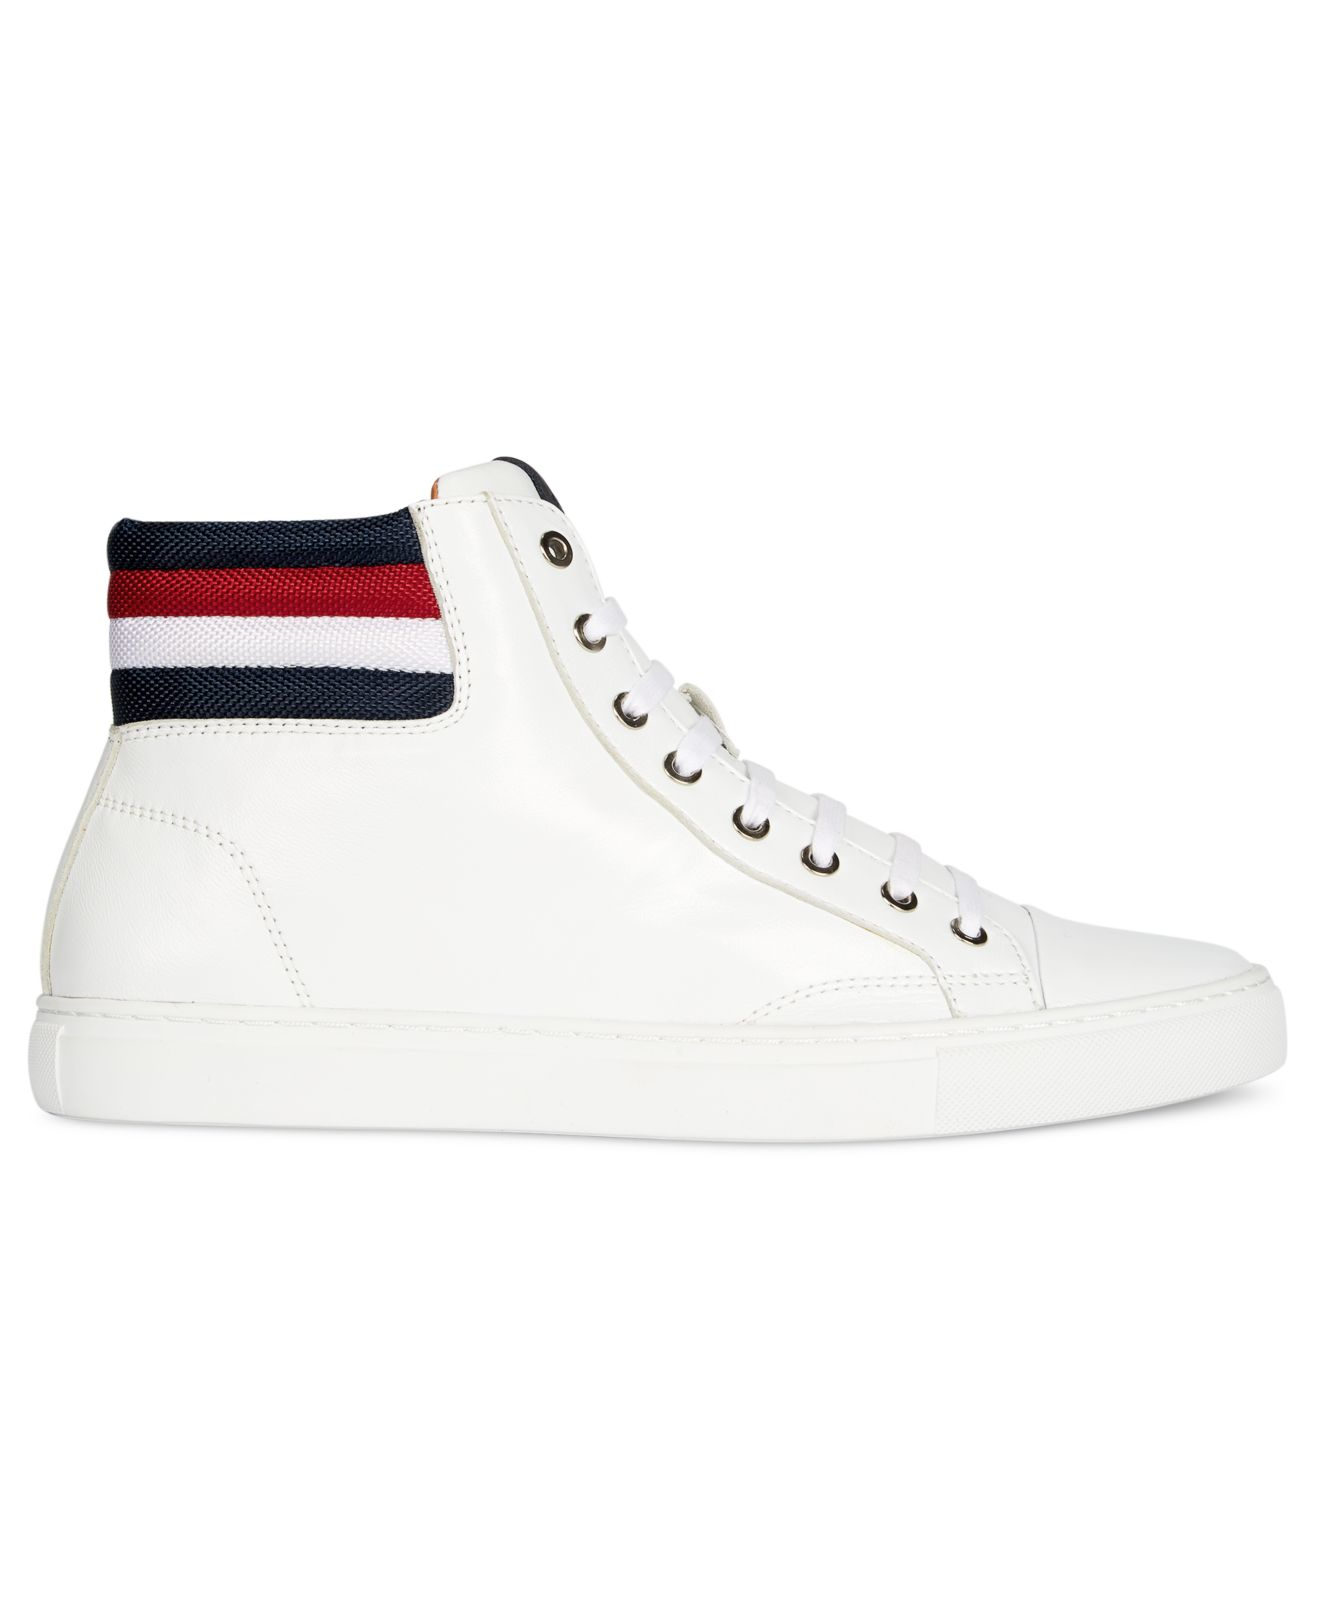 Tommy Hilfiger In Store Coupons 2017 2018 Best Cars